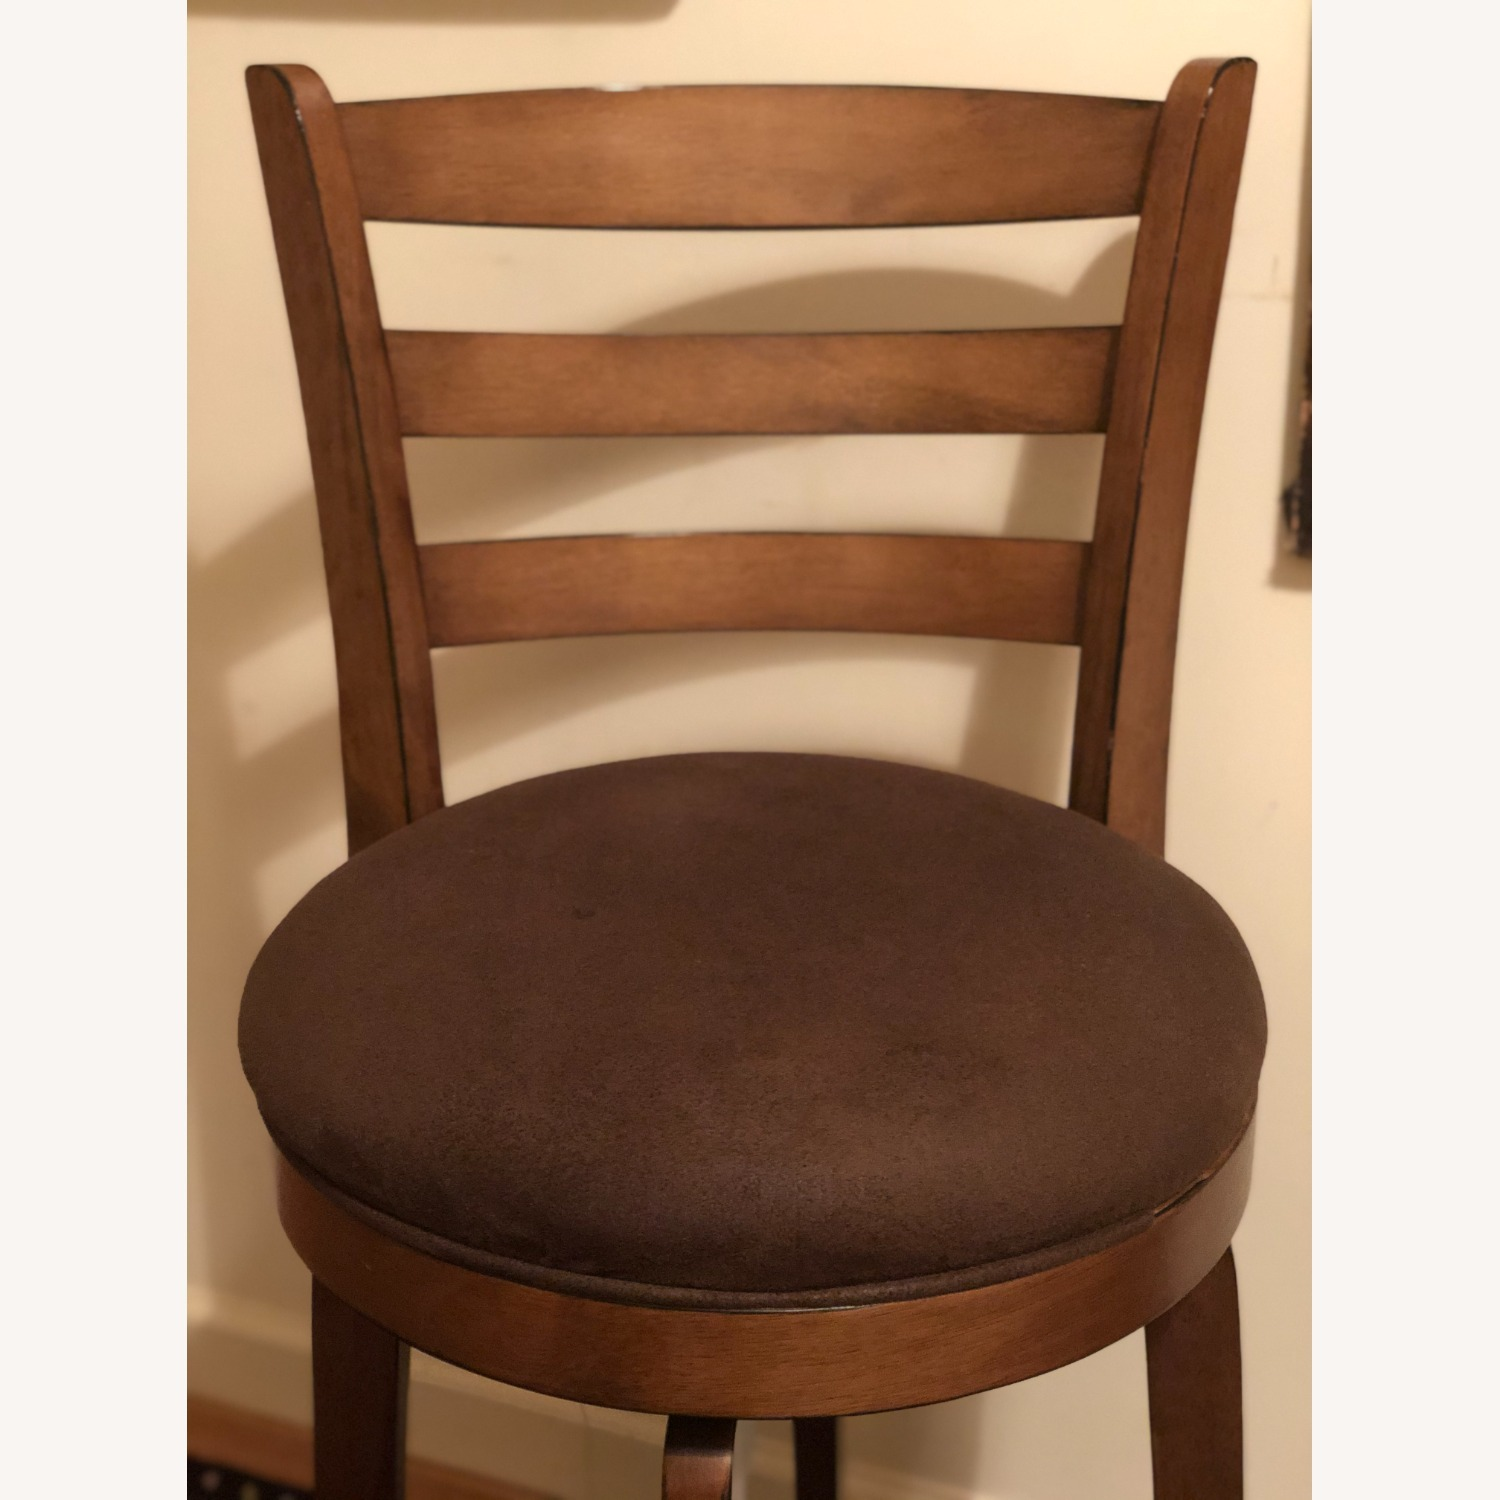 Bed Bath & Beyond Brown Swivel Counter Stool - image-3